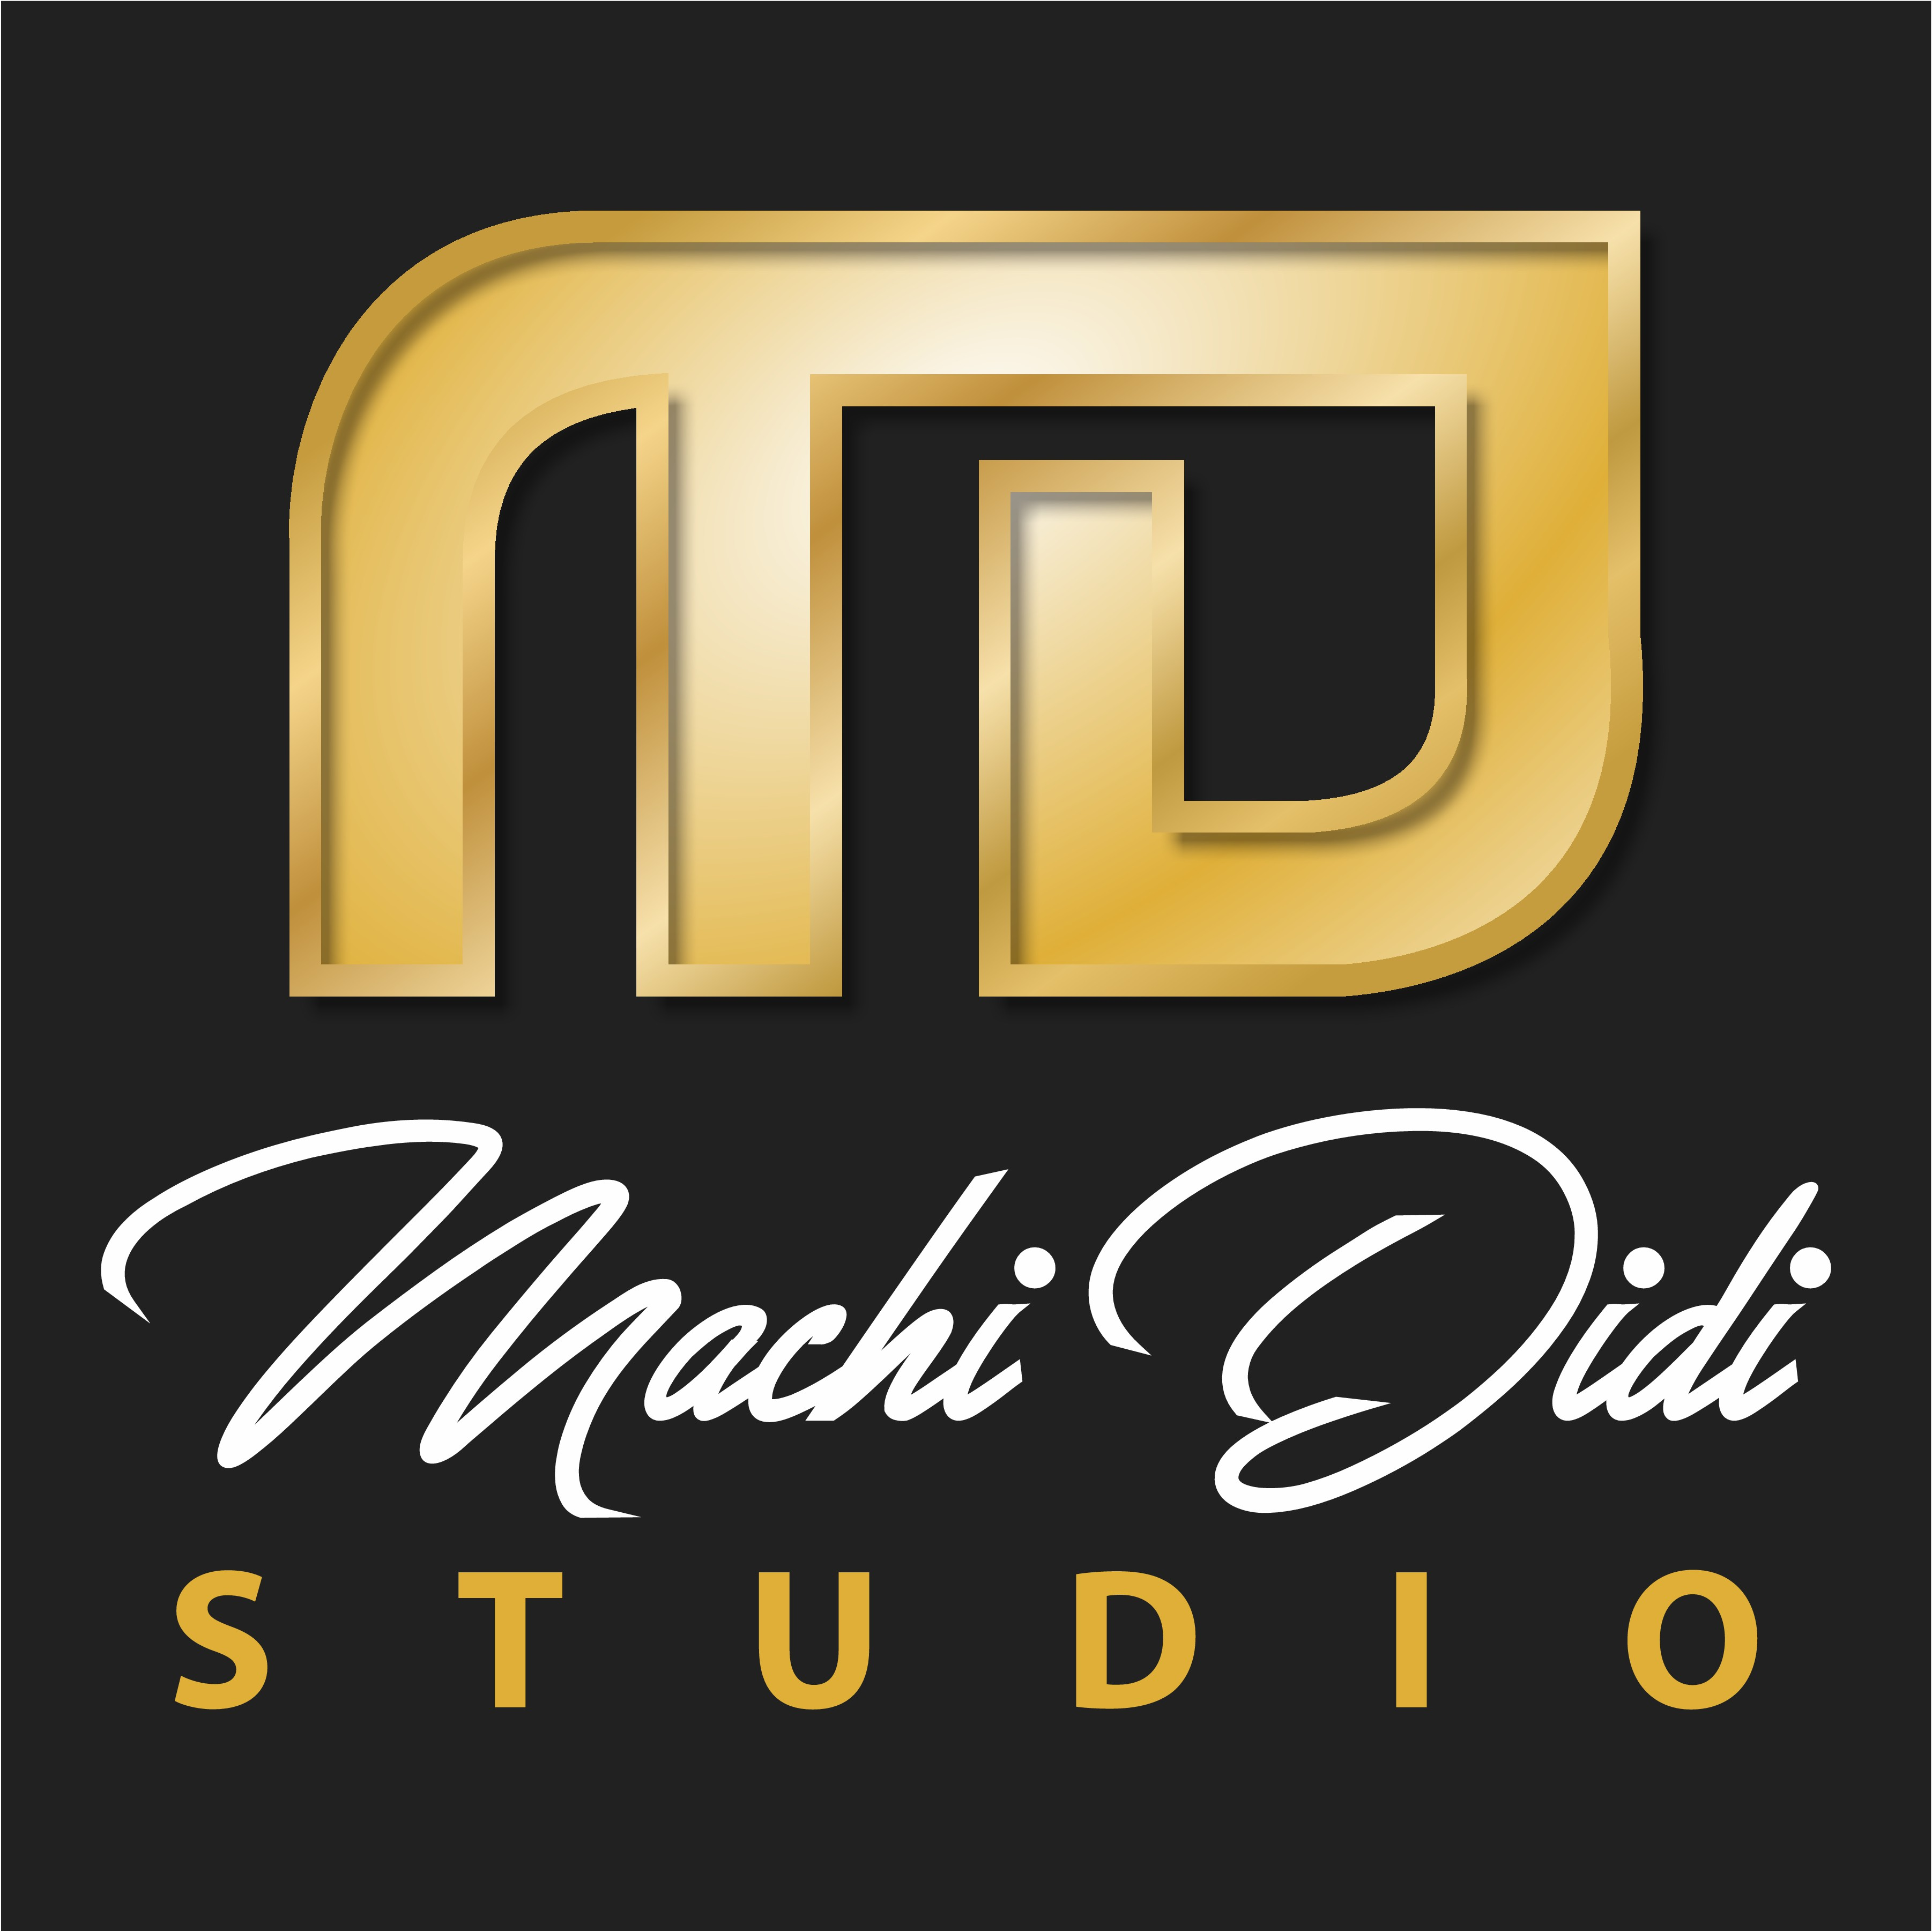 Professional Music Studio Needs Logo for Display on Acoustic Panel